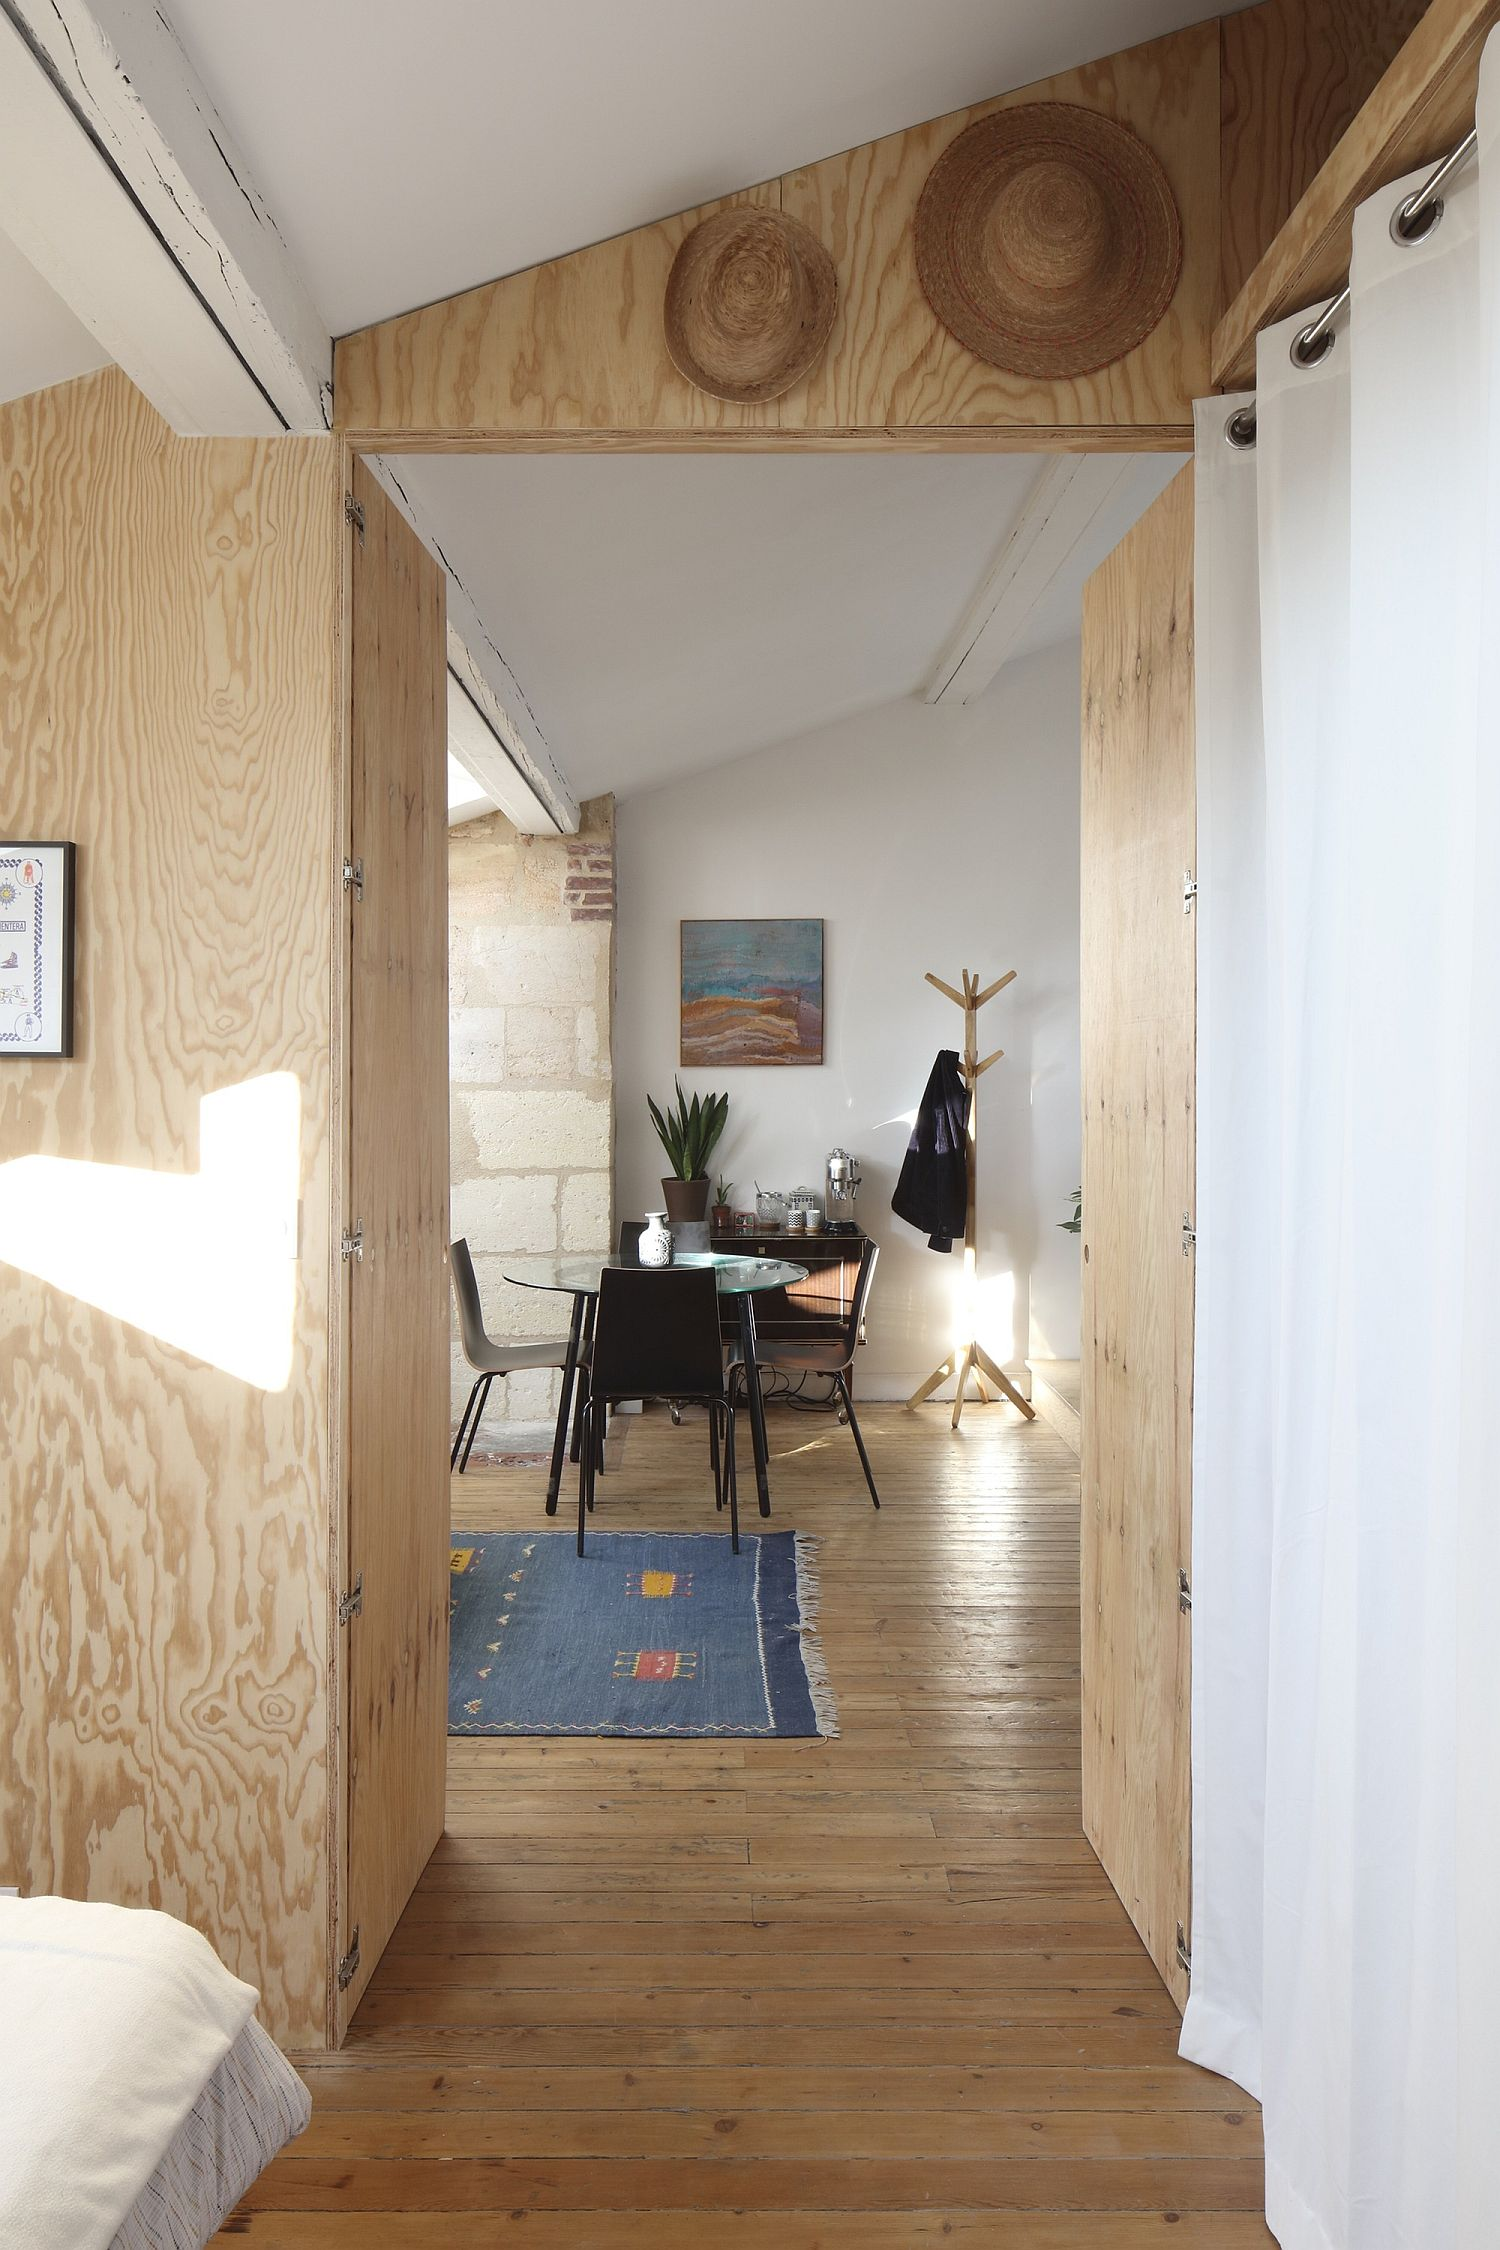 Unfinished wooden surfaces add a bit of rustic warmth to the modern apartment in white